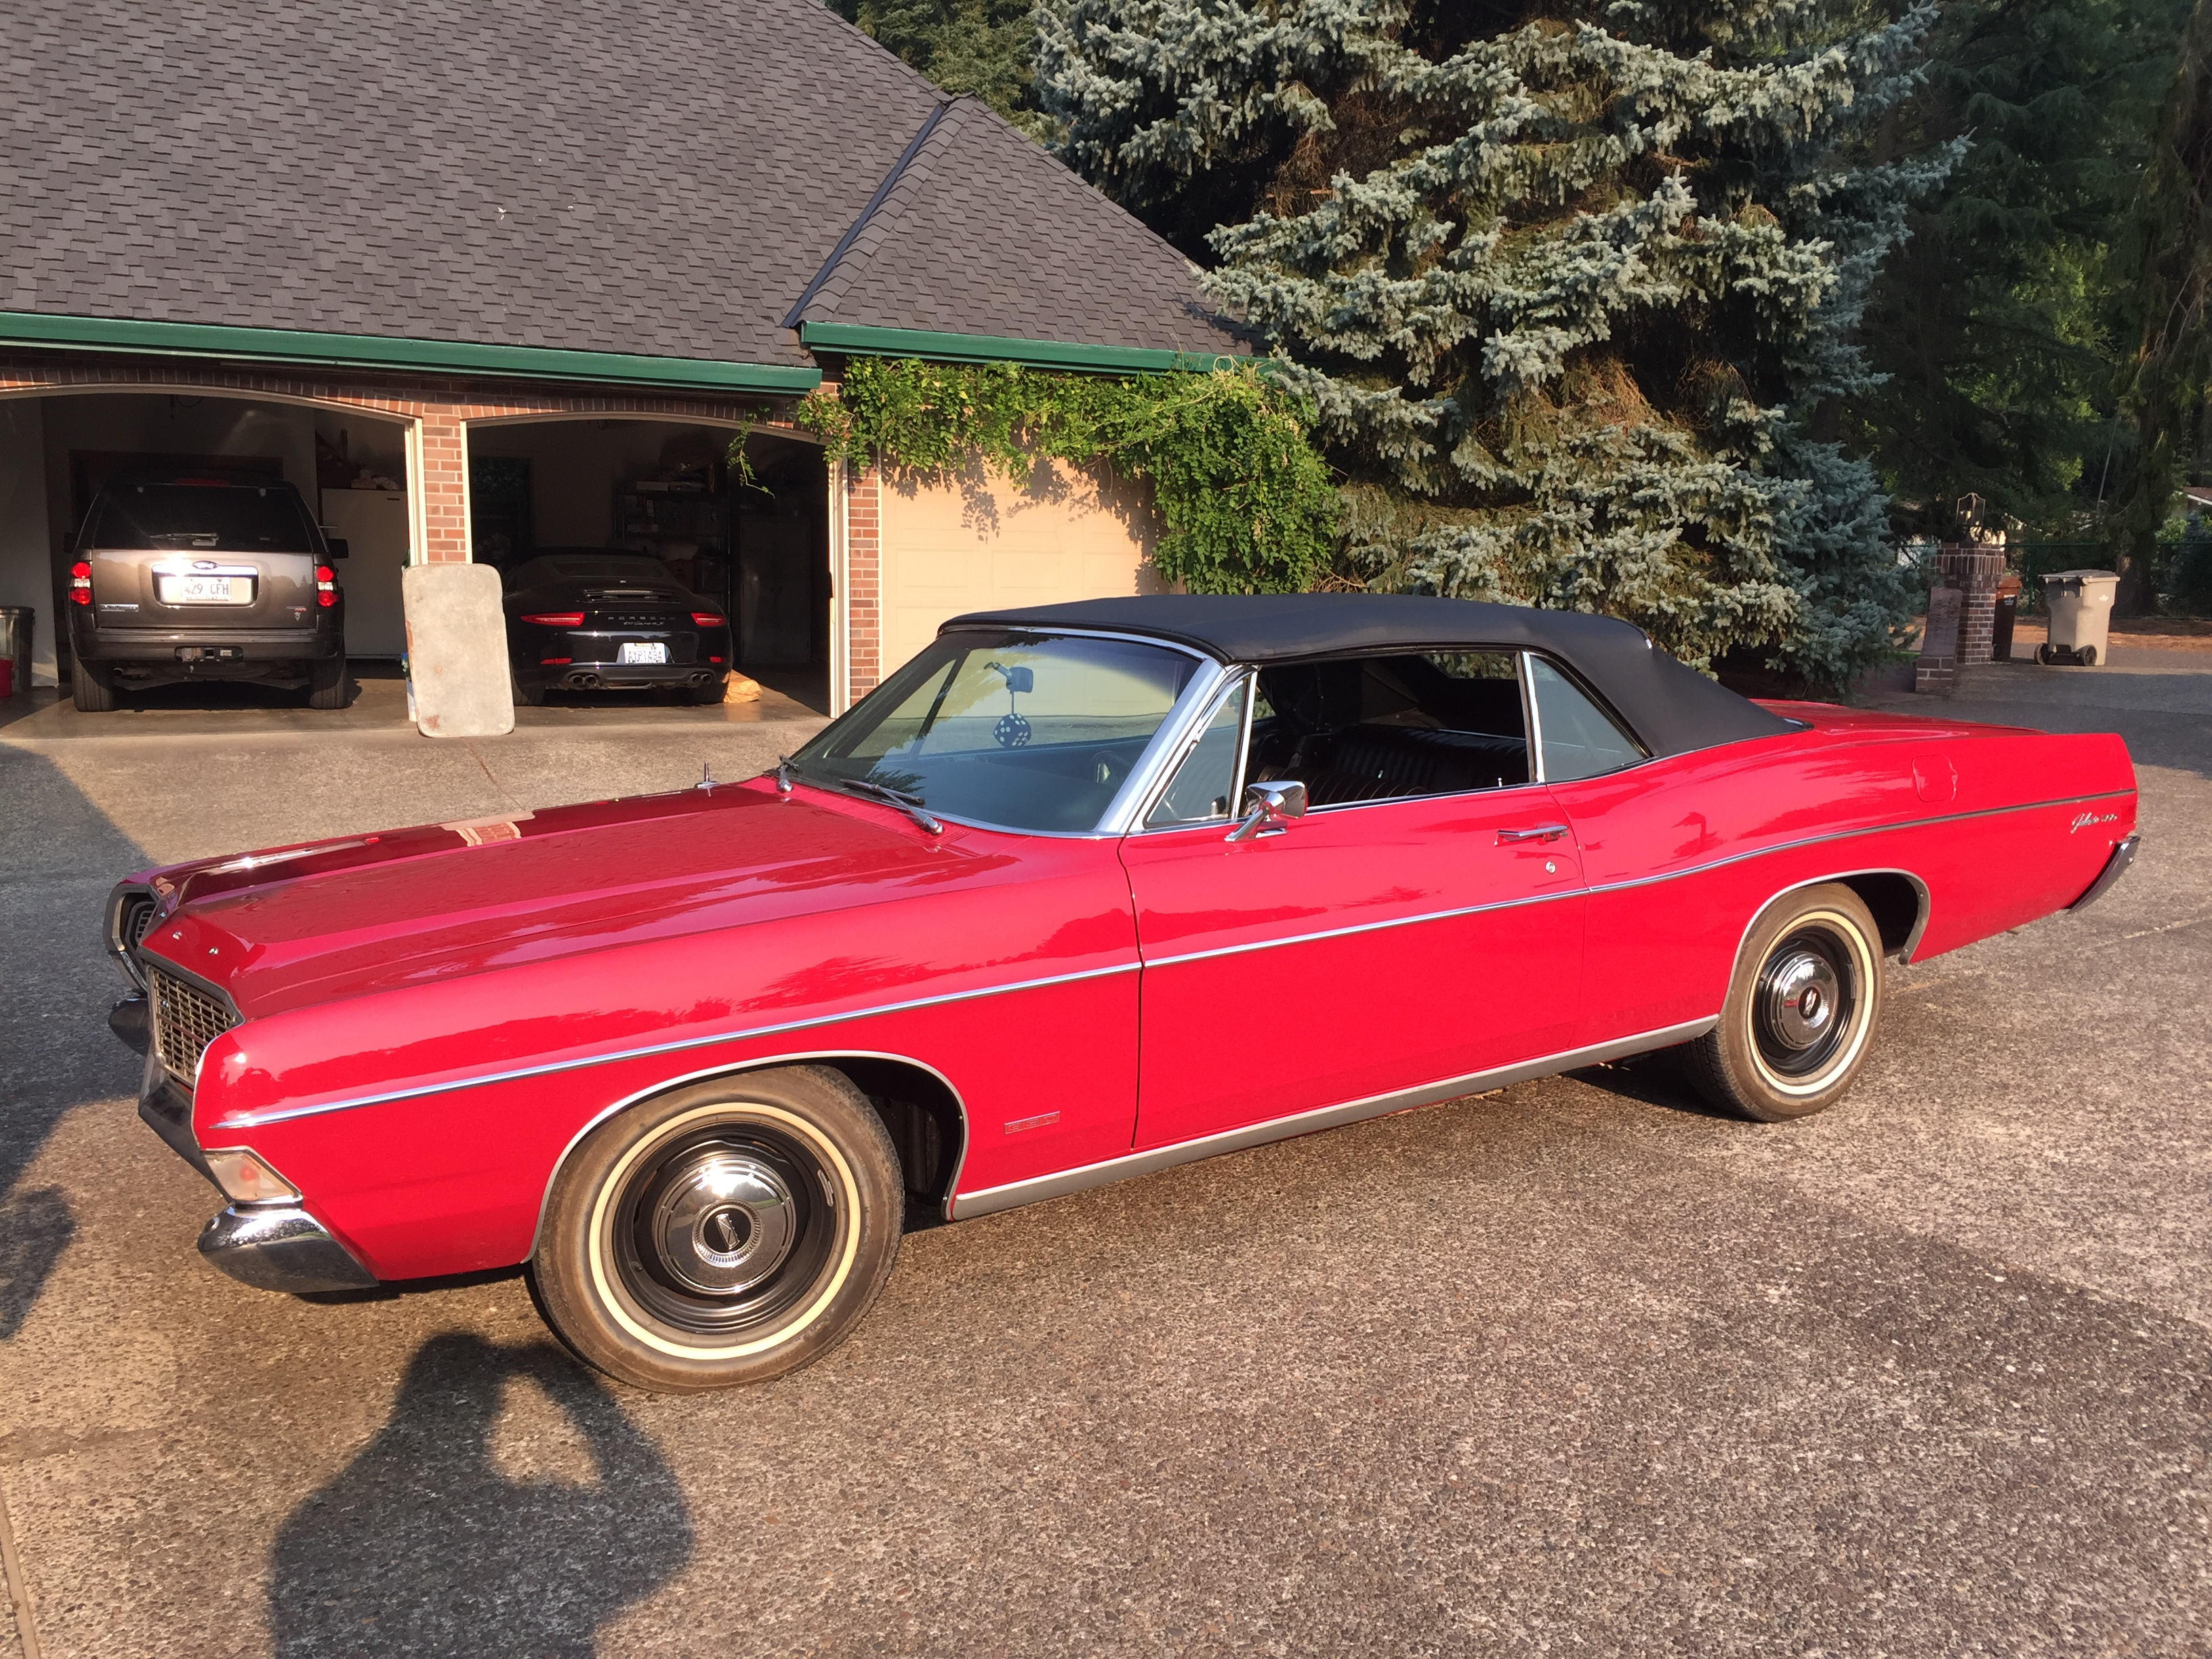 1968 Ford Galaxie Convertible Red